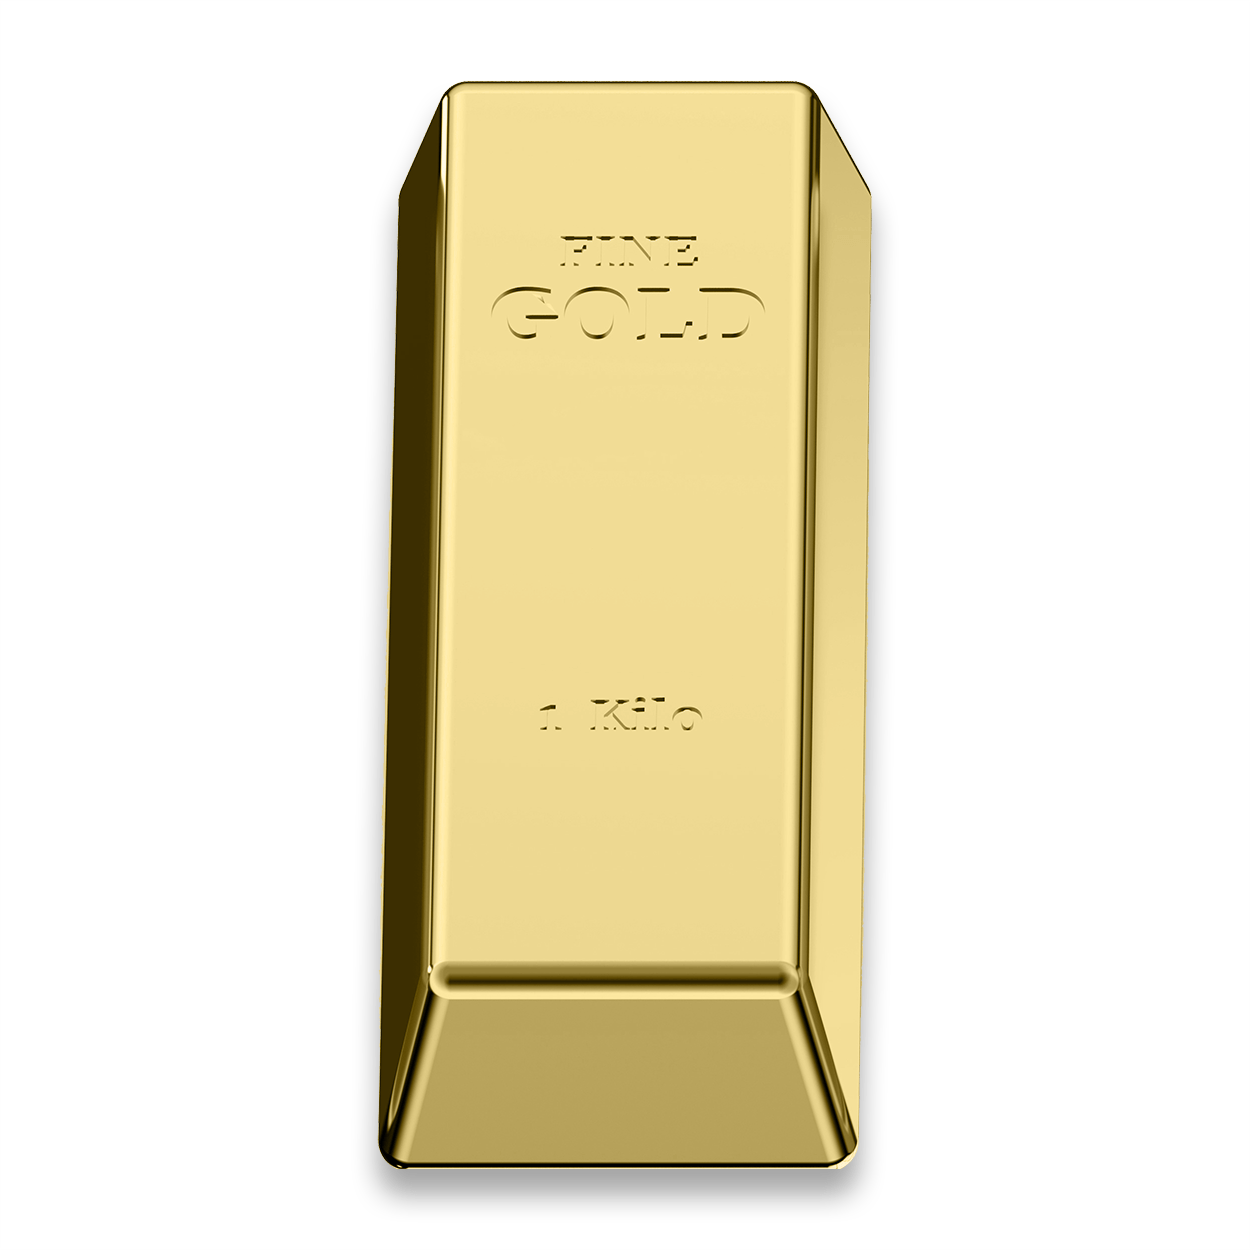 Find Out About The Advantages And Disadvantages Of Yellow Gold